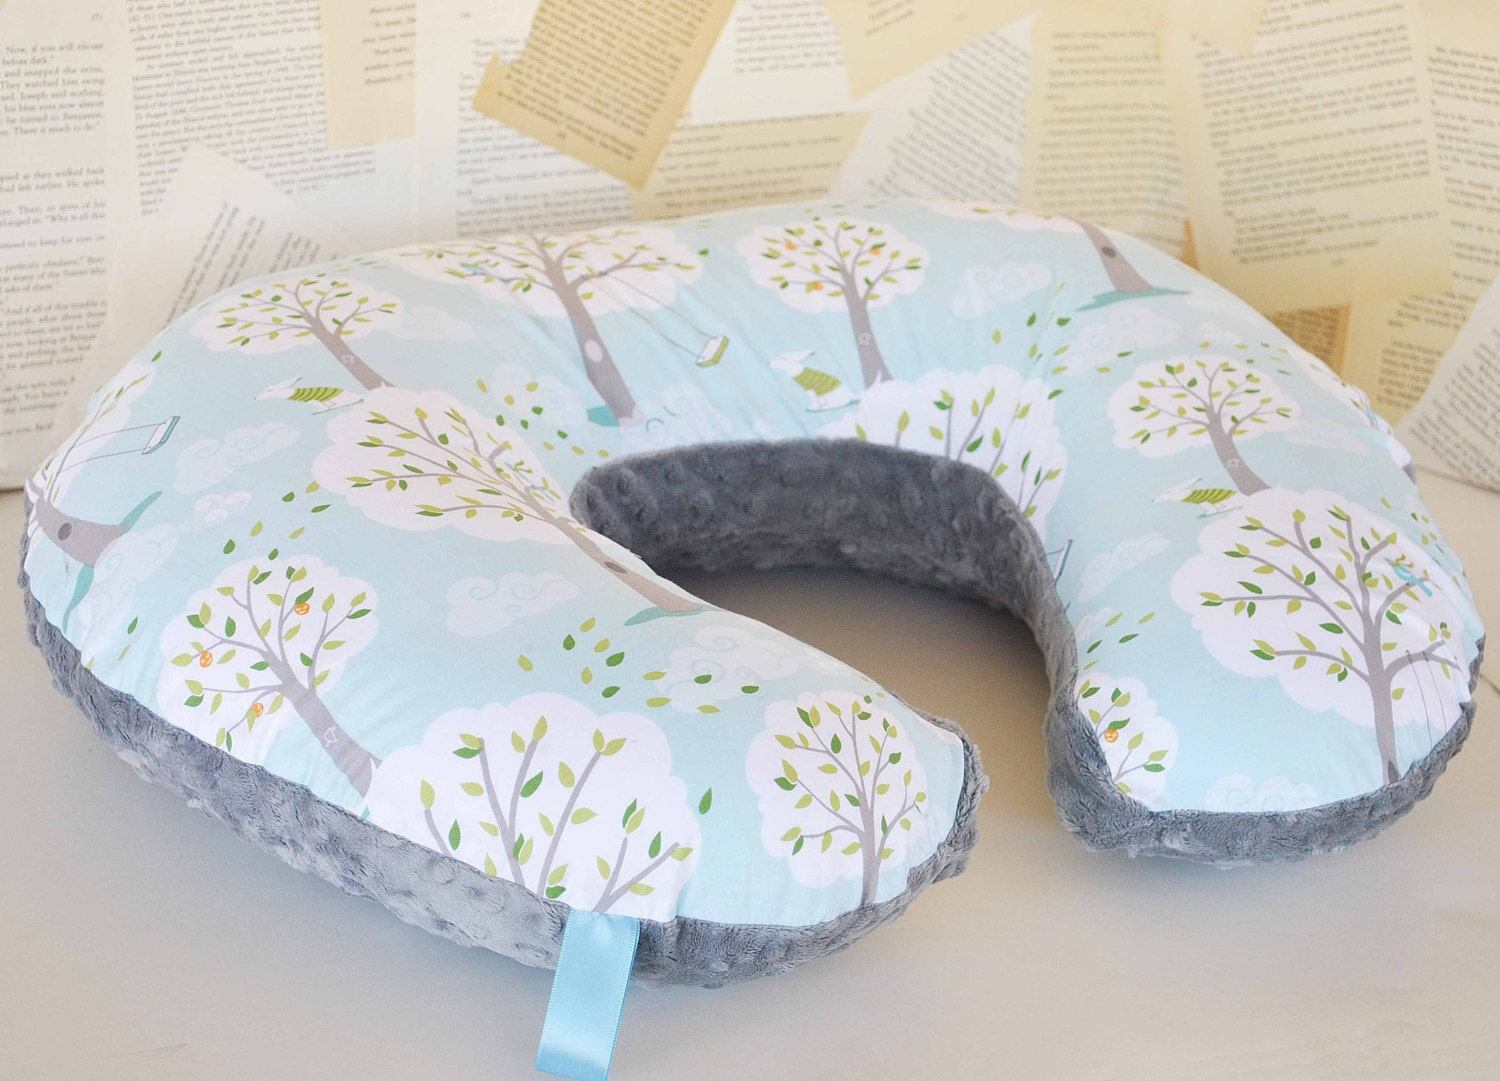 Windy Day Boppy Slipcover Zipper Closure Backyard Baby